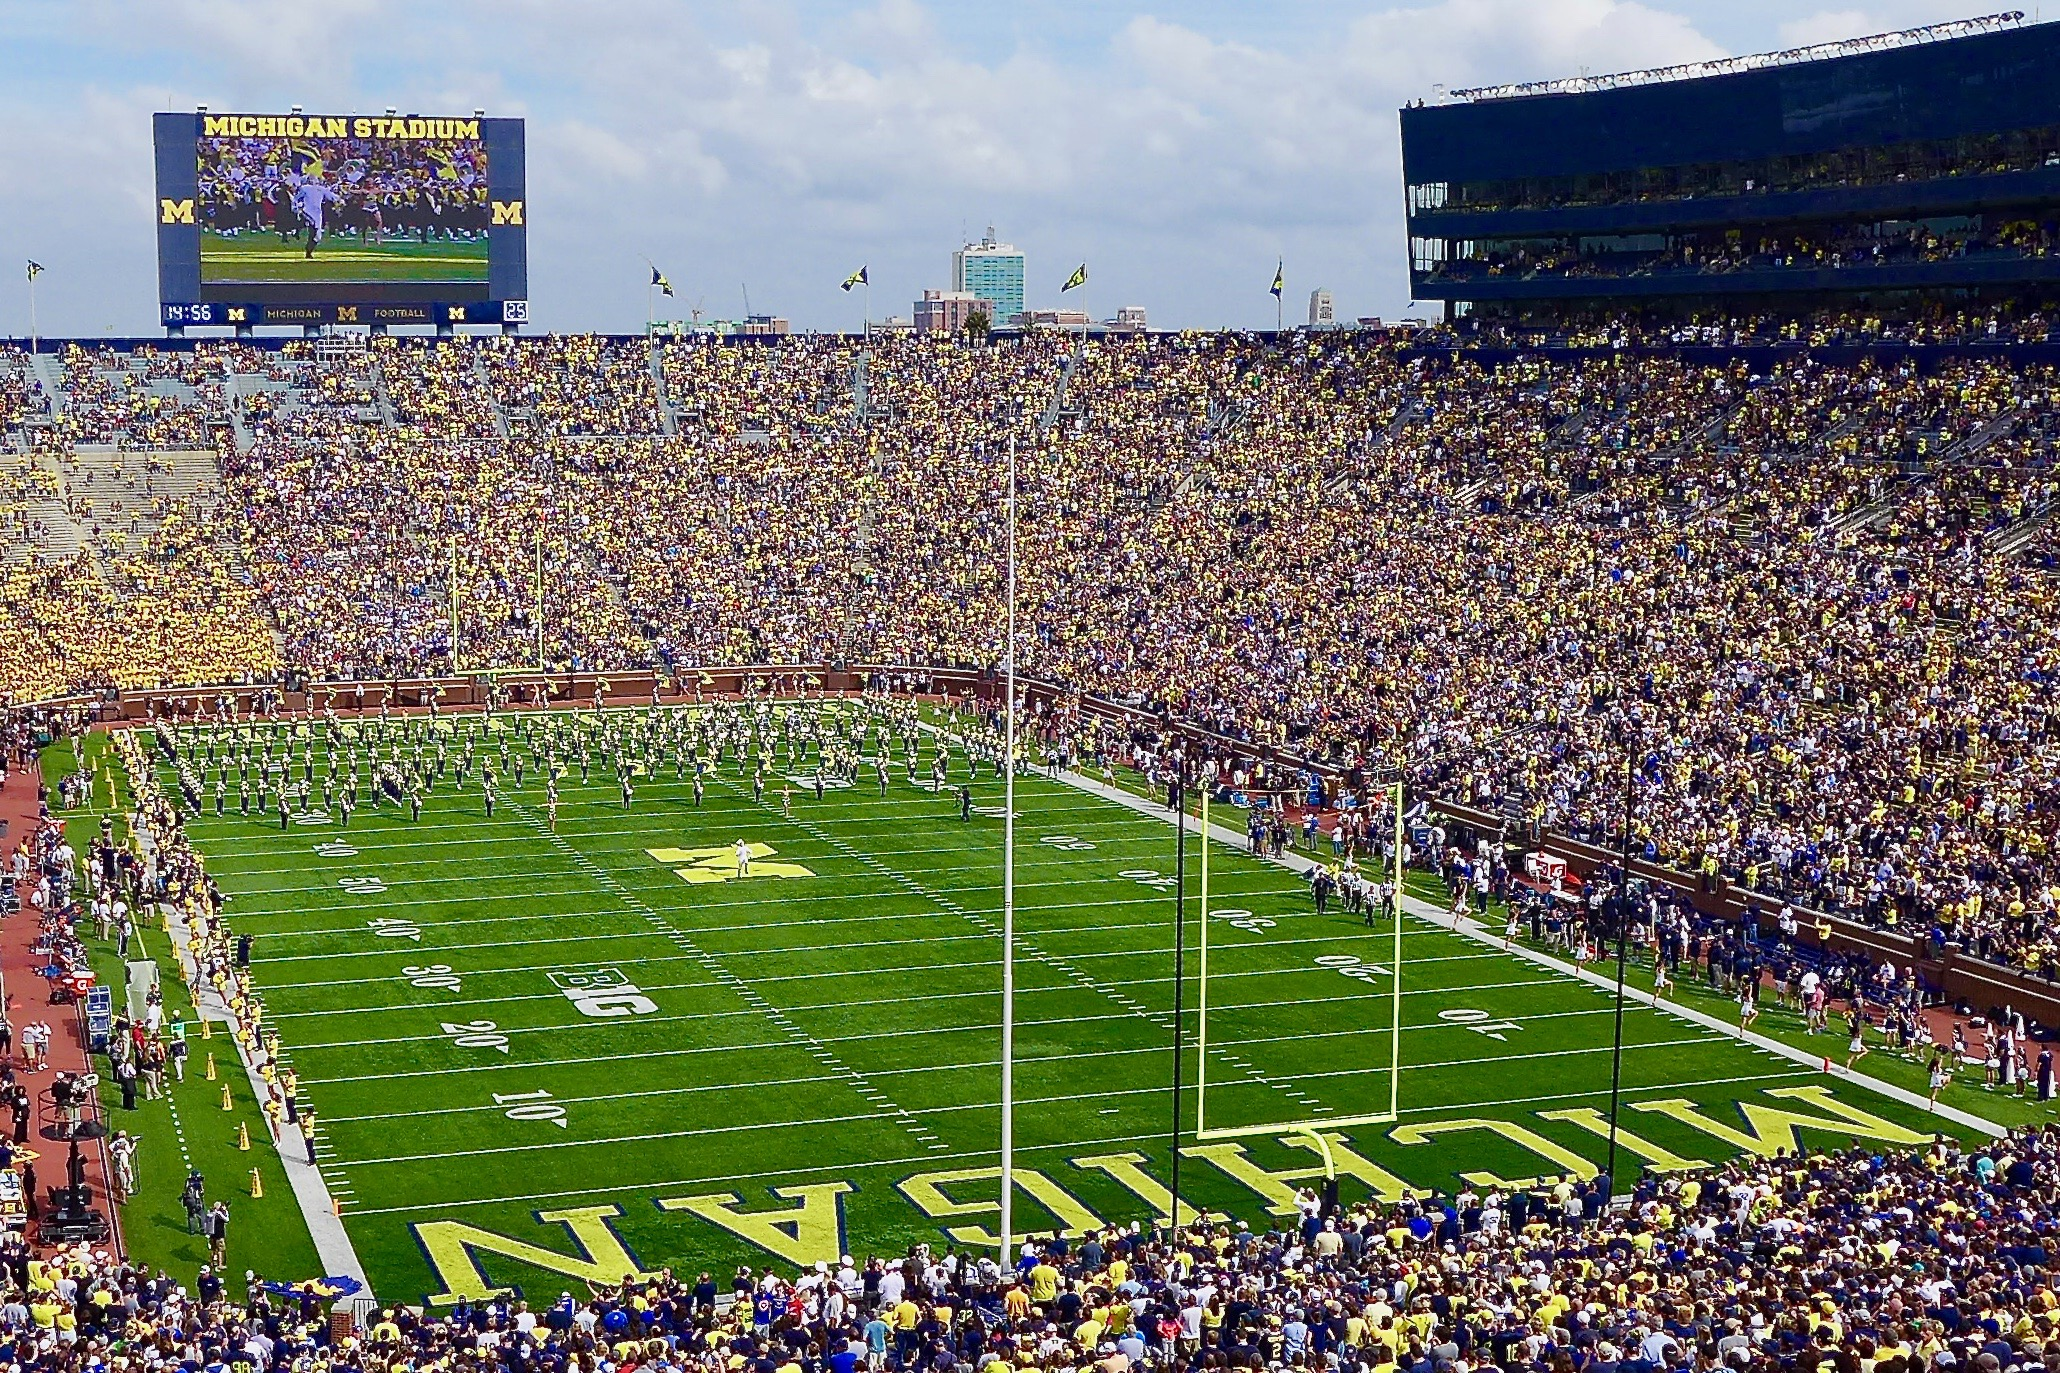 View of the University of Michigan football stadium, known as The Big House, on game day